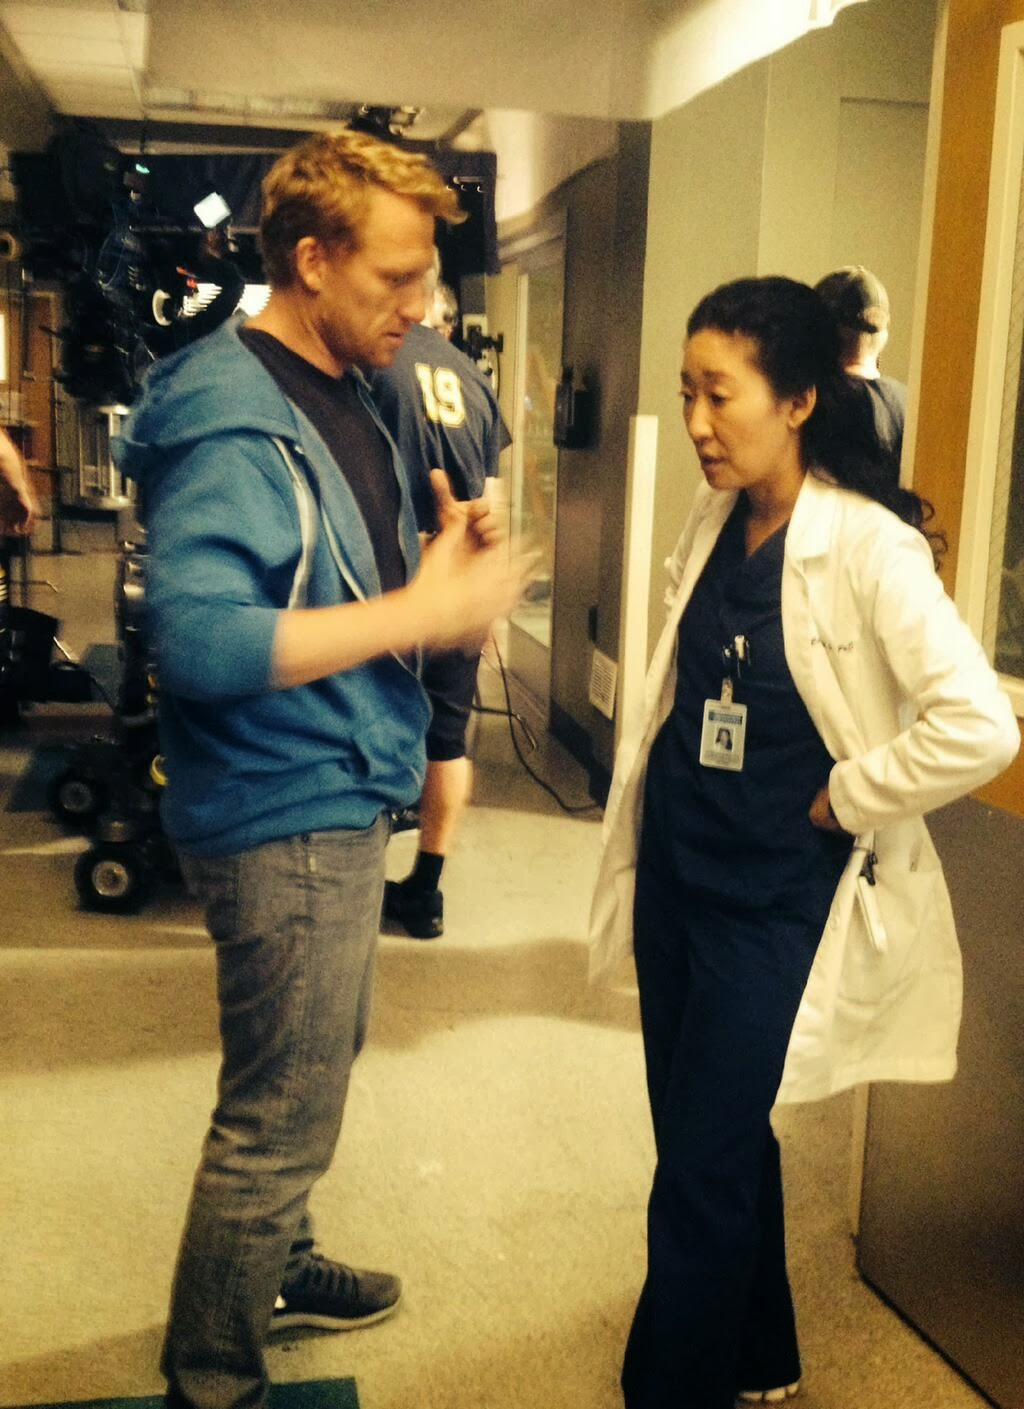 Sandra Oh On  Good Morning America  - The InterviewKevin Mckidd And Sandra Oh